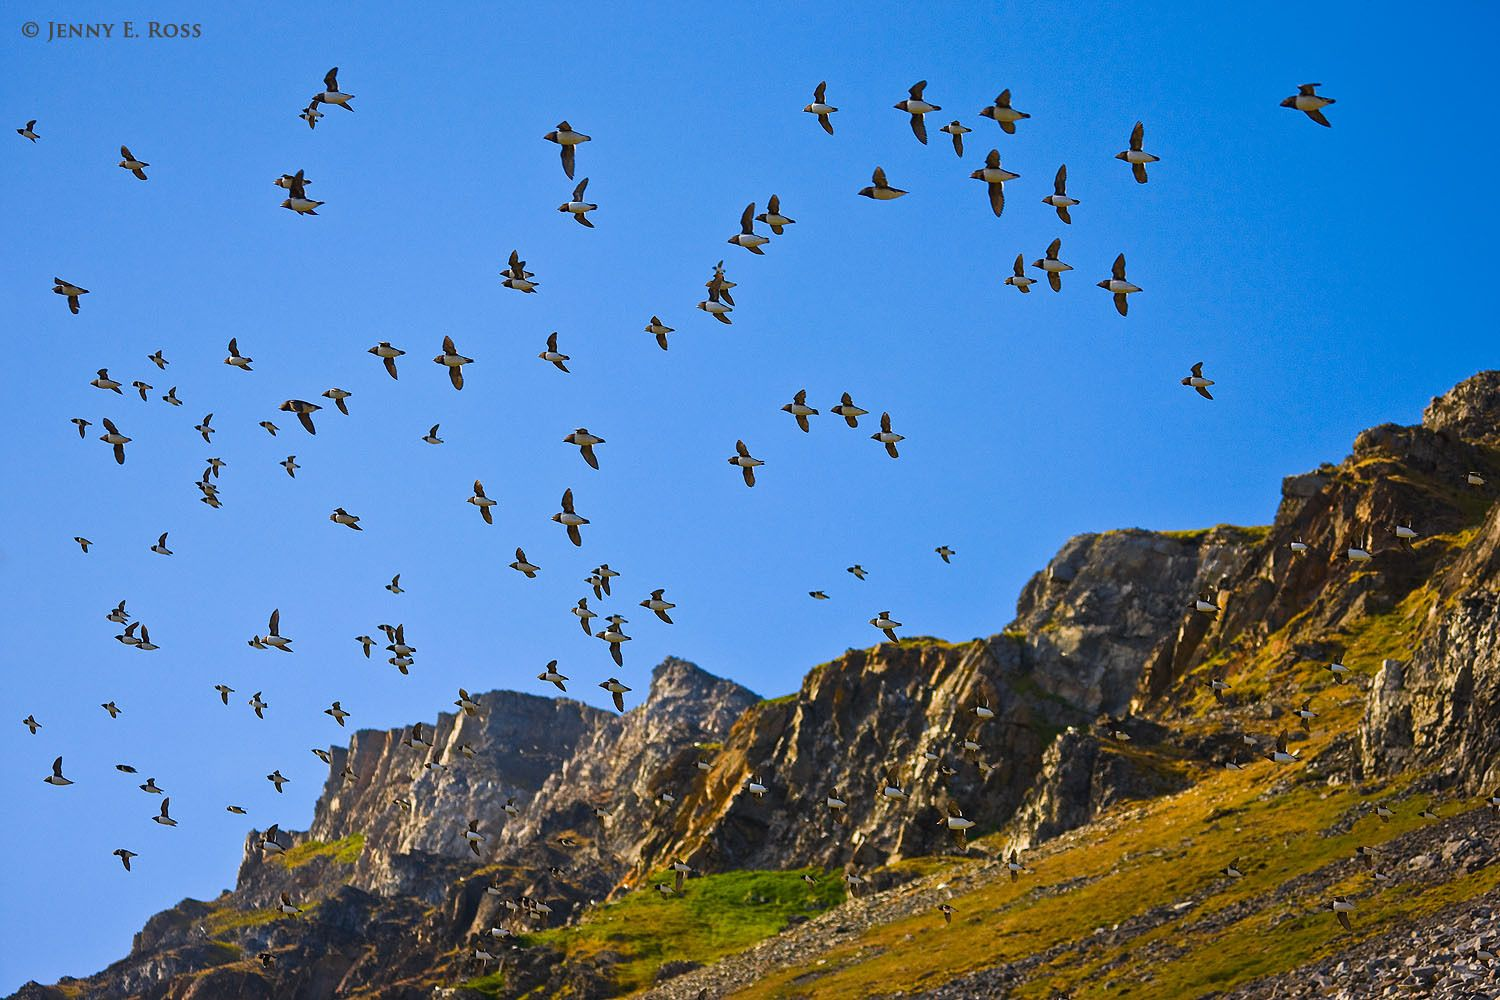 Little Auks (Alle alle) flying to and from their nesting colony on the scree slopes at Ingeborgfjellet in Volbukta, Bellsund, Spitsbergen. Svalbard Archipelago, Norway.